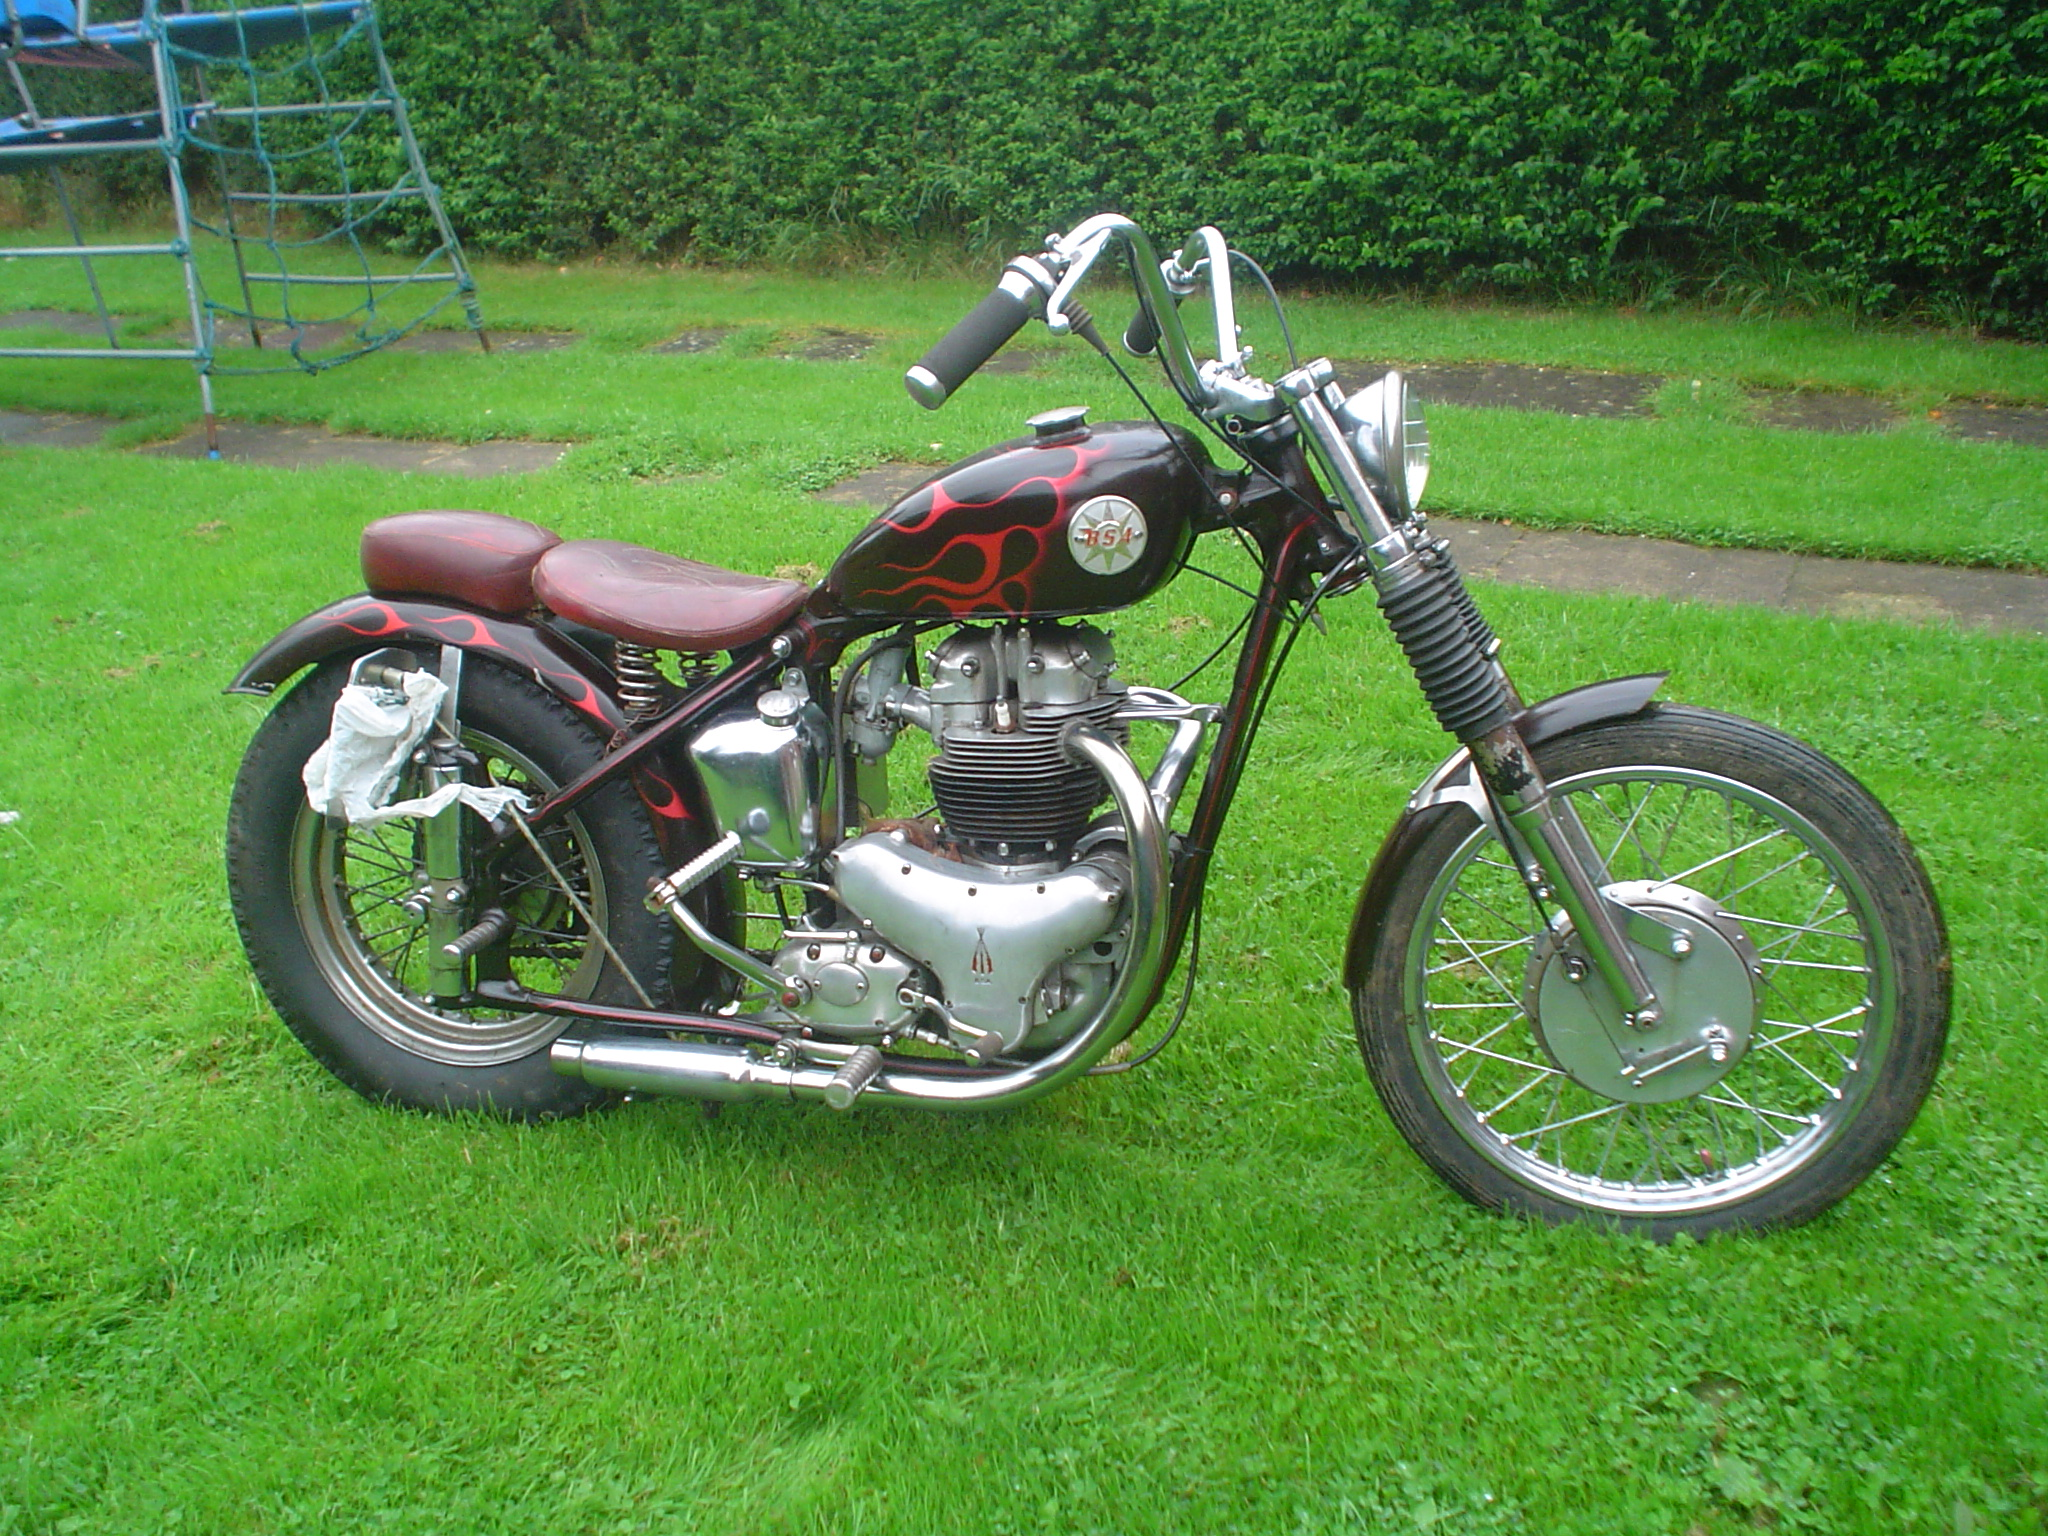 Bsa golden photo - 1